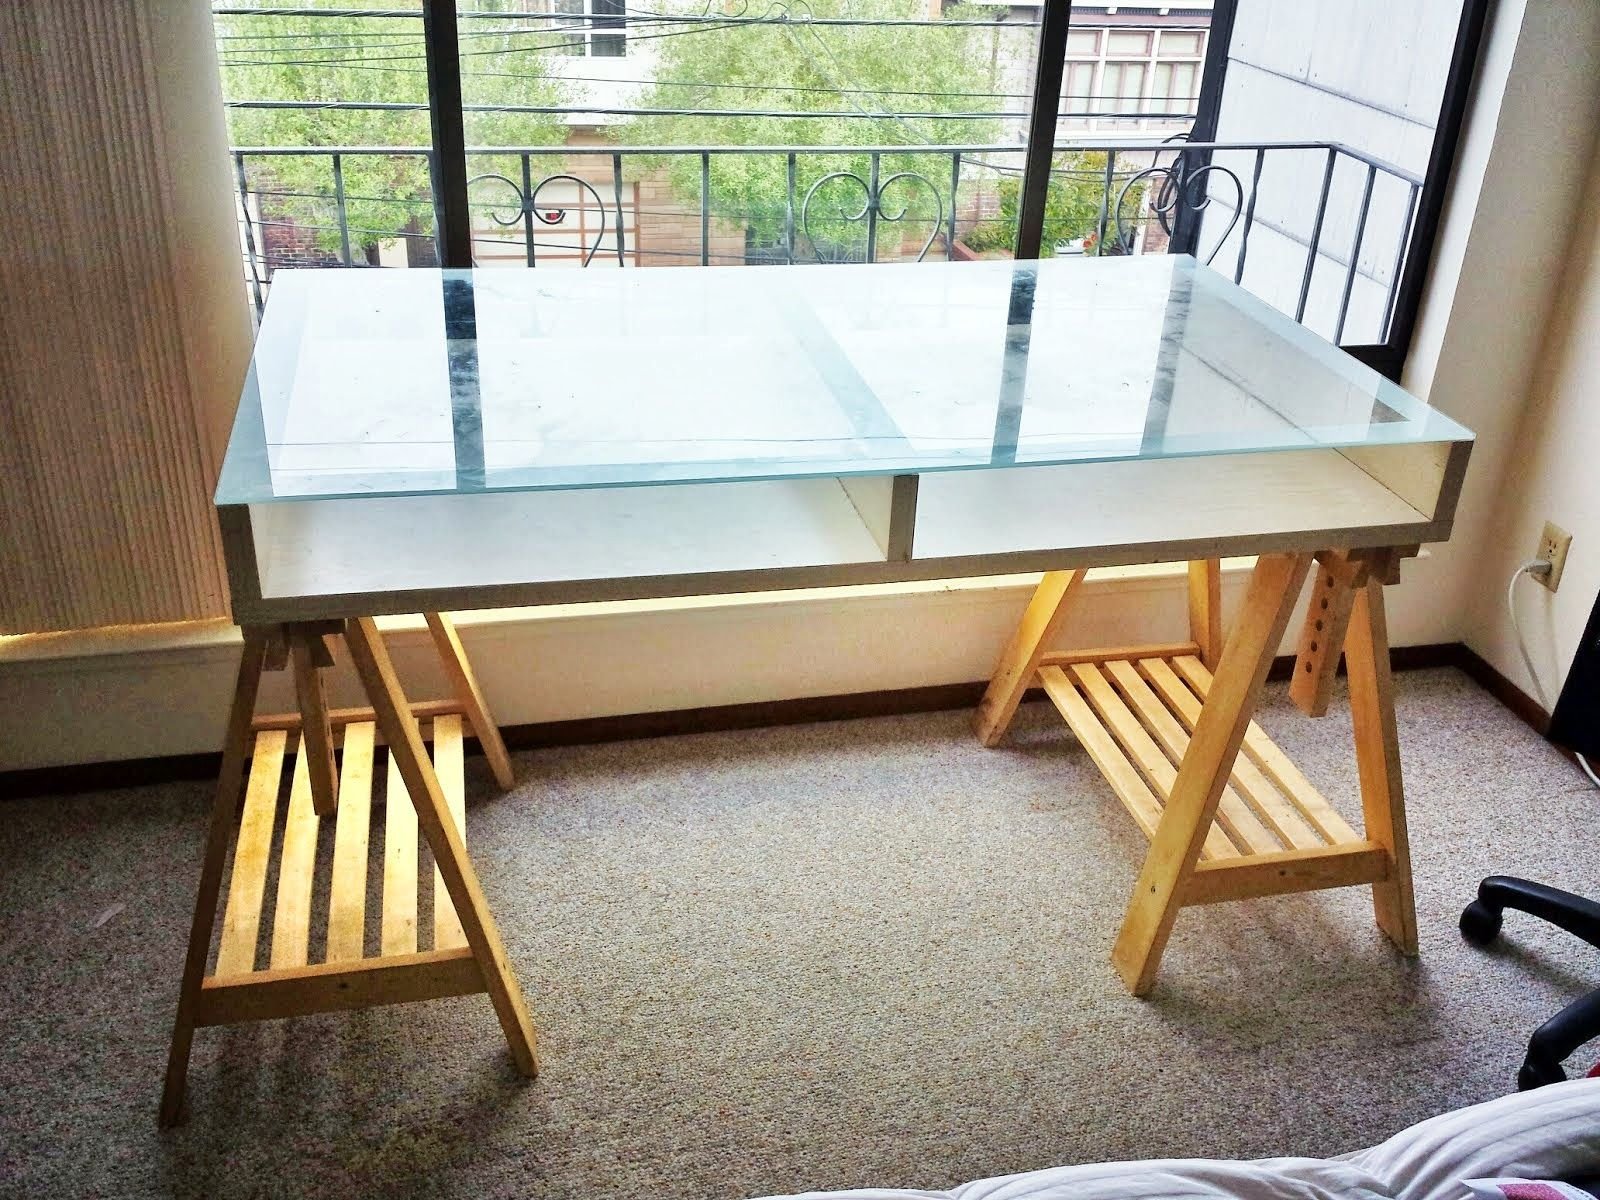 Magiker Adjustable Desk Ikea Hackers Ikea Desk Ikea Glass Table Adjustable Desk